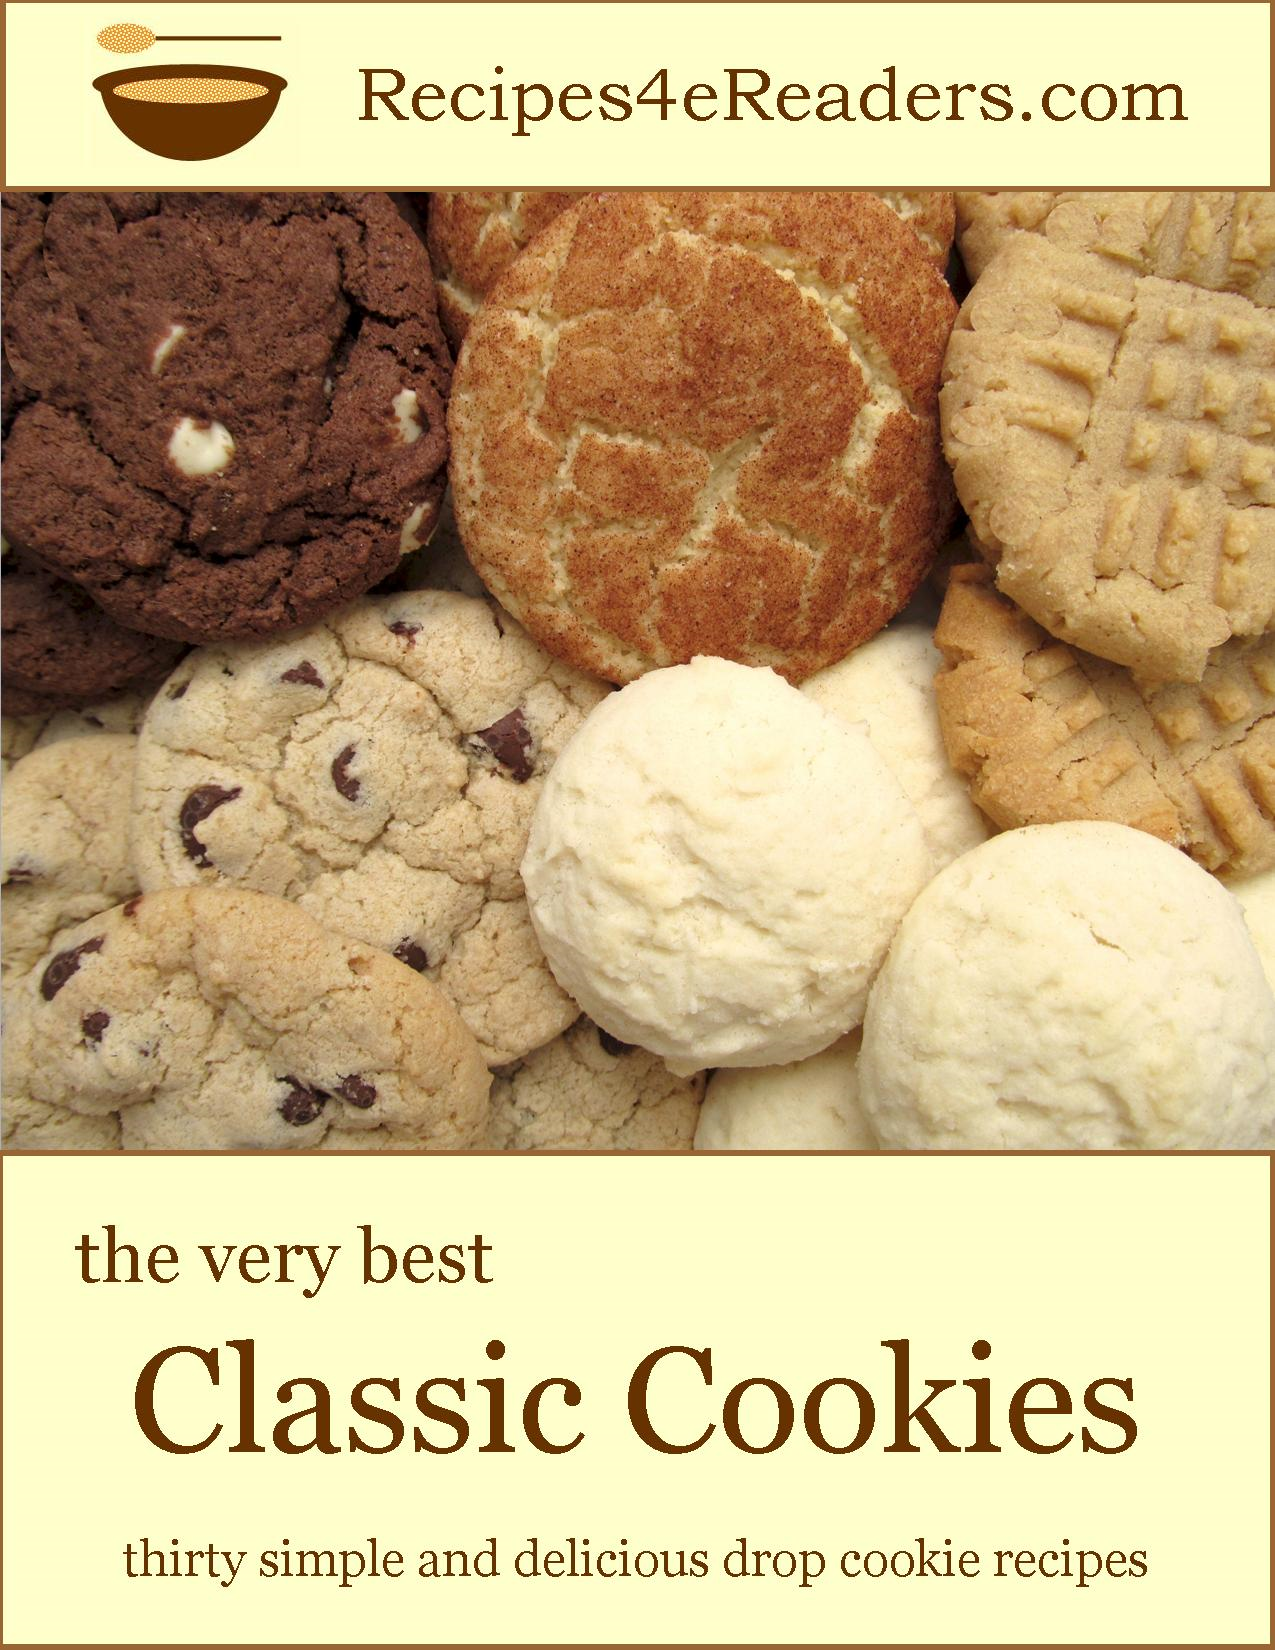 The Very Best Classic Cookies